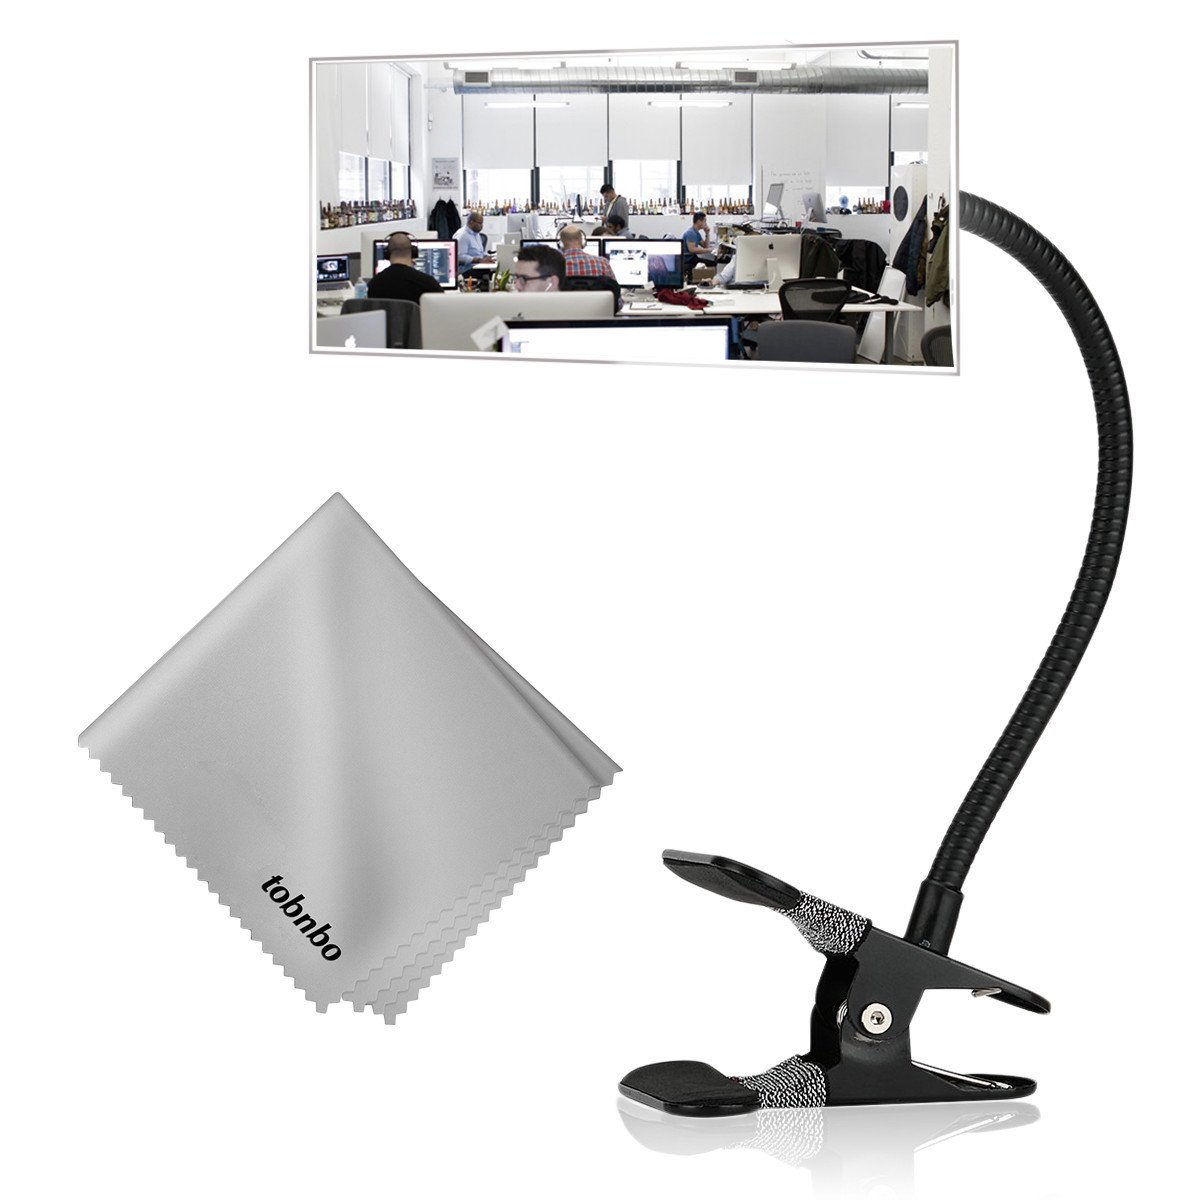 """Office Cubicle Clip on Mirror, 7.28'' Rear View Computer/Laptop Safety Mirror, Desk Convex Mirror for Personal Safety & Security Portable Cabinet Rearview Monitors(Rectangle Mirror 7.28"""", Black)"""